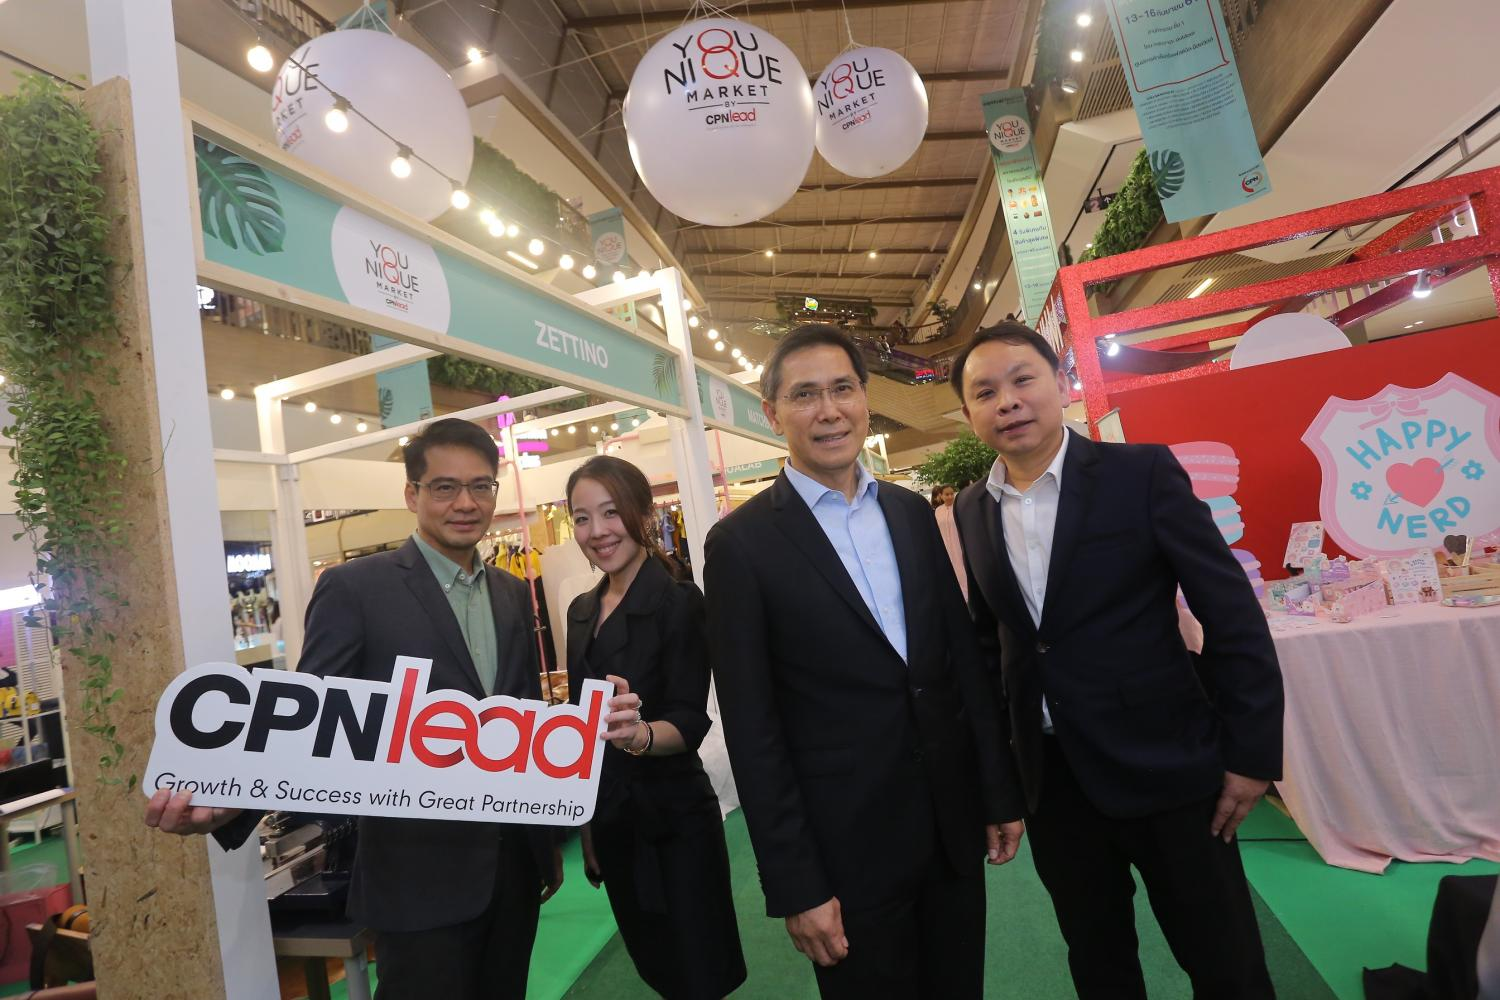 Mr Preecha (second right) says the programme supports Central Pattana's vision of promoting entrepreneurs.